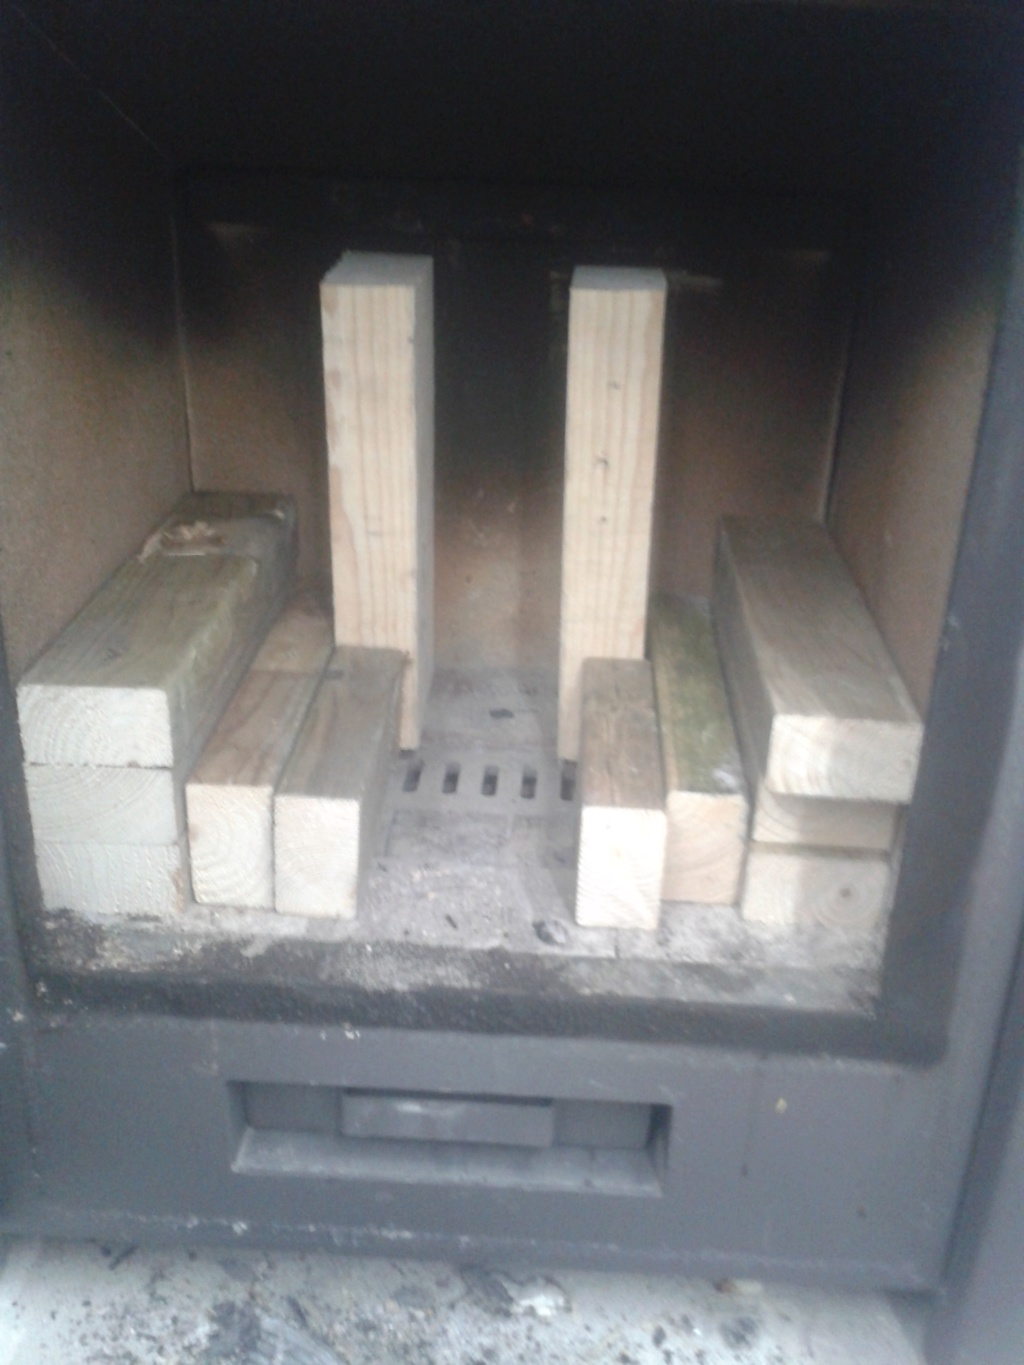 new wood stove rocket stove built inside of it  20181113